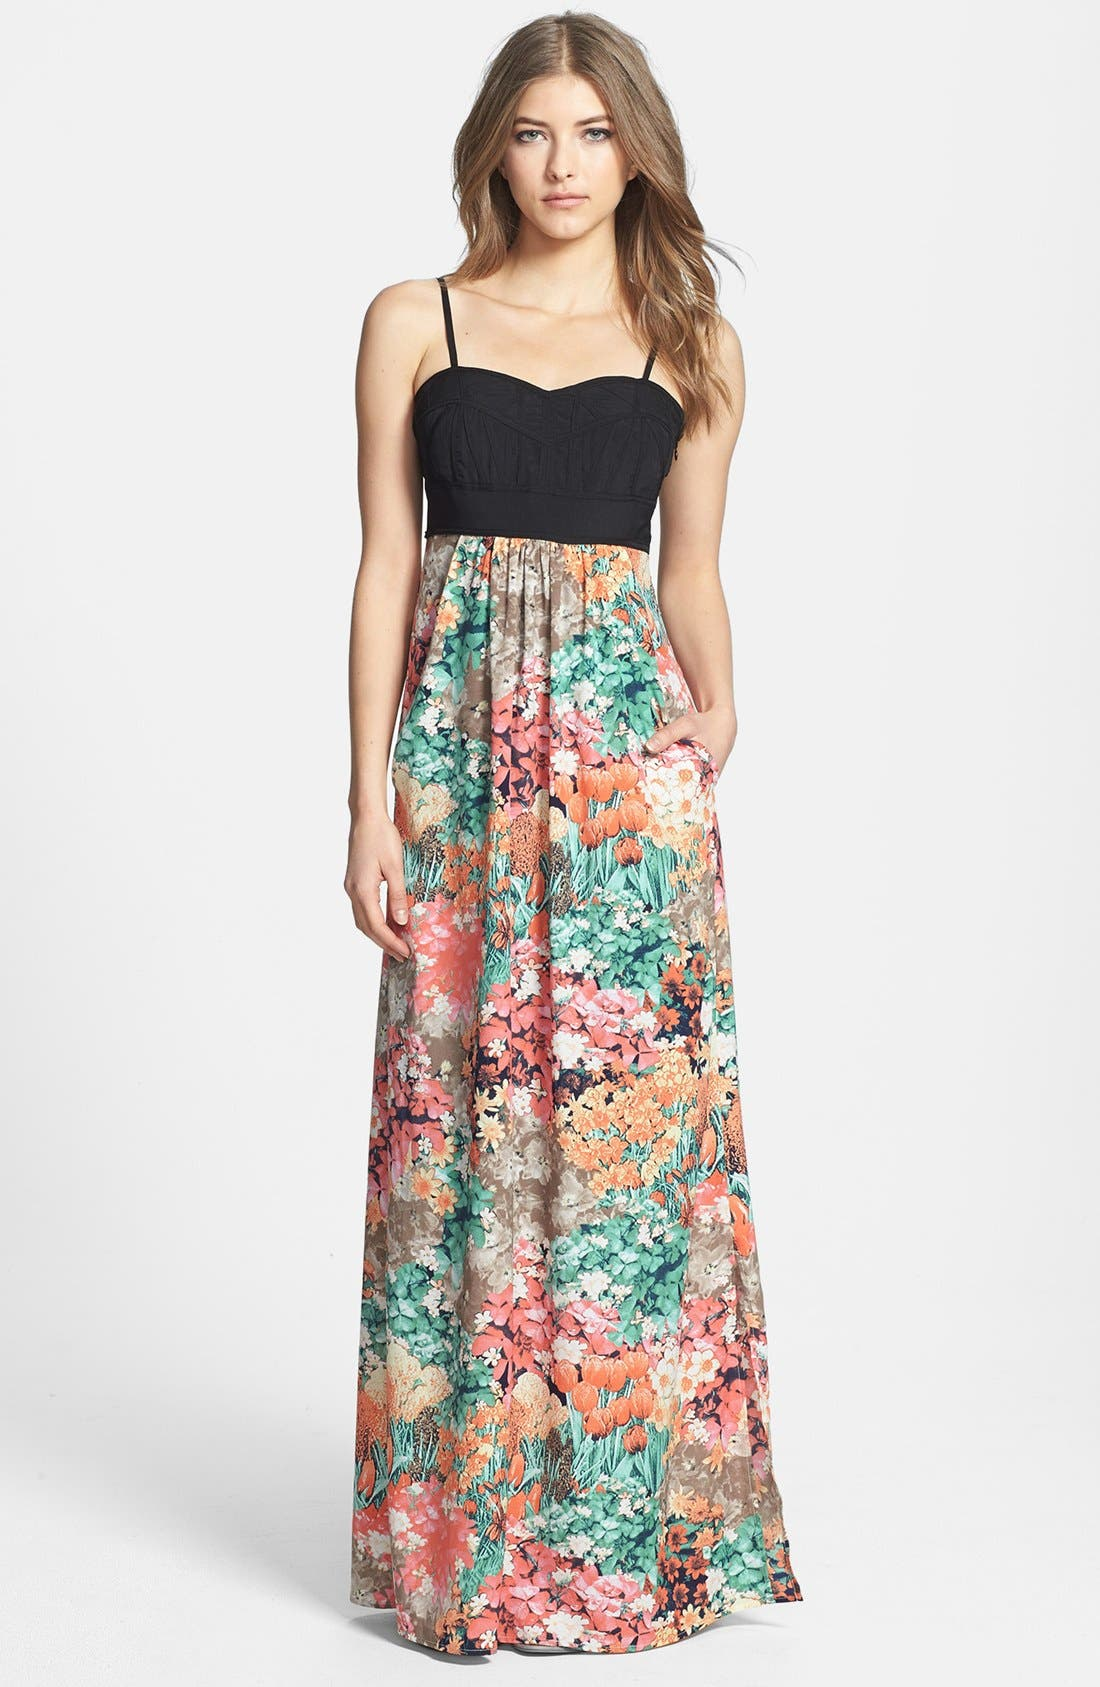 Alternate Image 1 Selected - MM Couture Floral Print Skirt Maxi Dress